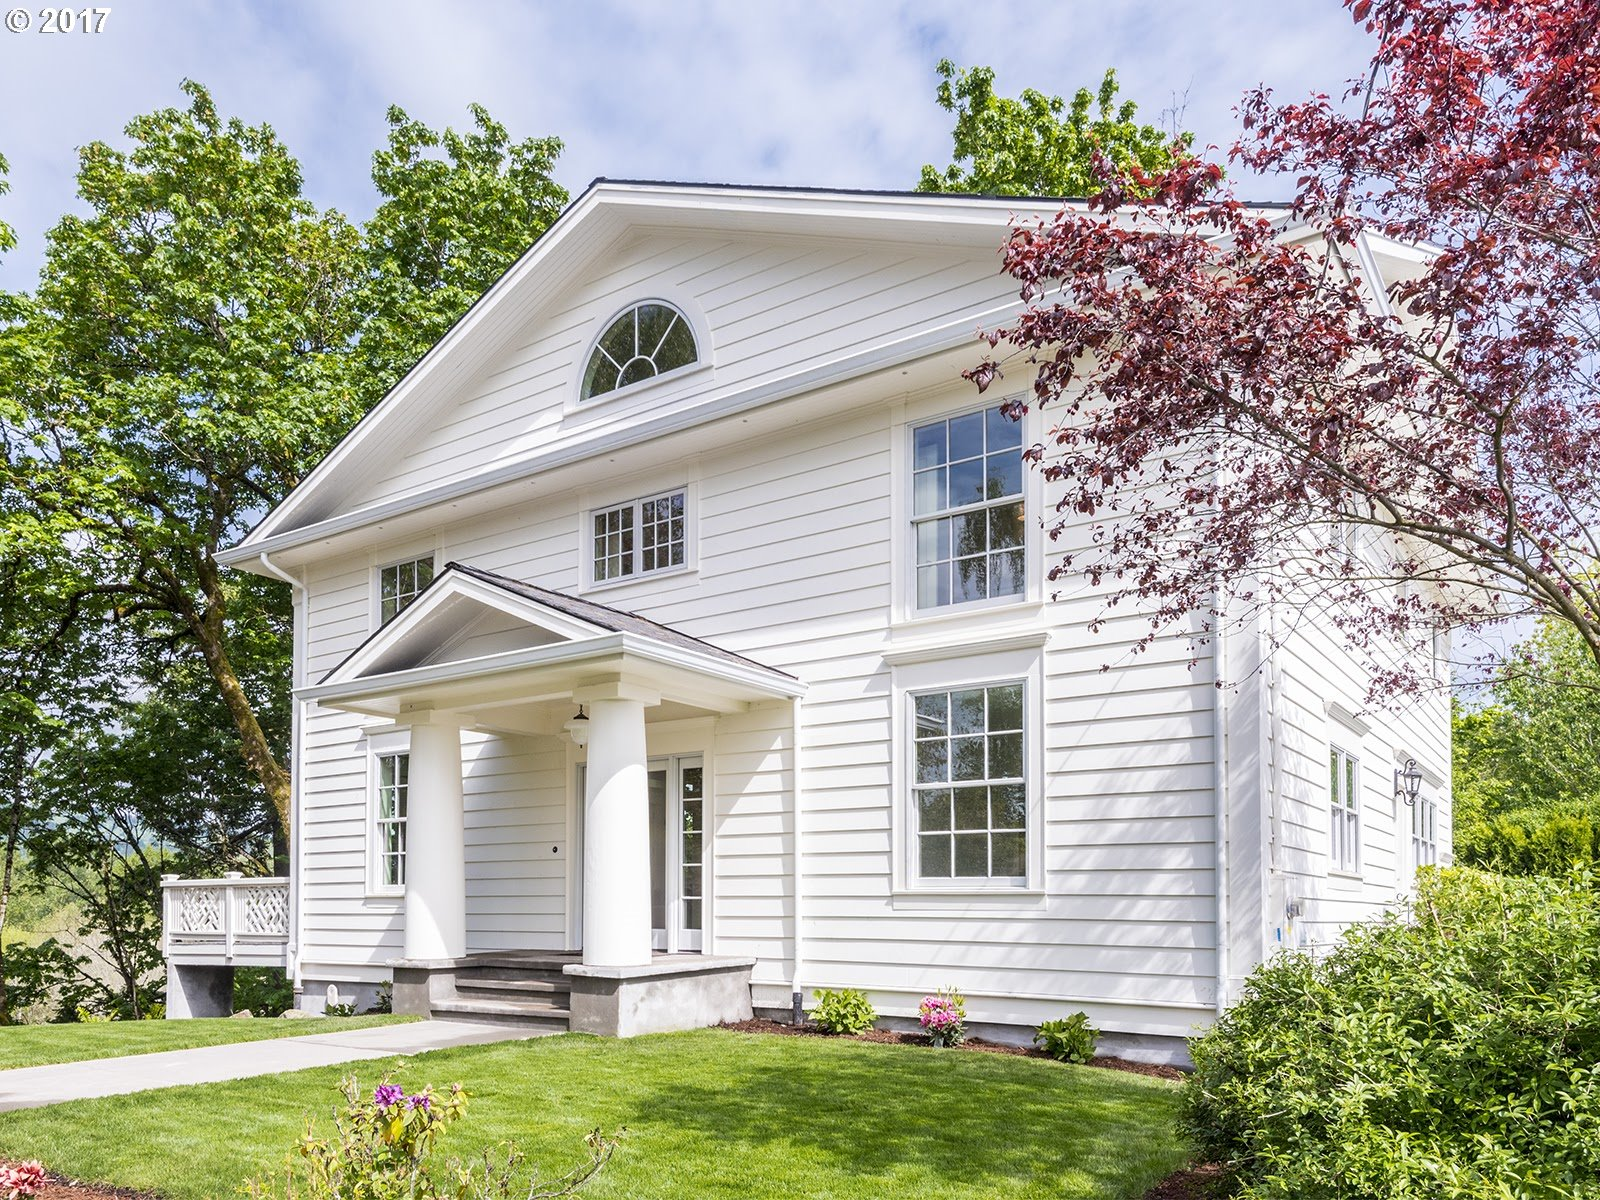 Gorgeous Greek Colonial overlooks 141 acres of serene and protected wildlife refuge,hiking and river views.Sleepy cul de sac completes quiet locale.2-story wall of windows and numerous skylights bathe house in natural light.Chefs kitchen,elegantly tiled Master Suite,kids beds with Jack and Jill bath,ground floor guest suite,thrilling views from deck and inside viewing platform.Exuberant Jeffersonian architecture.Once in a lifetime find